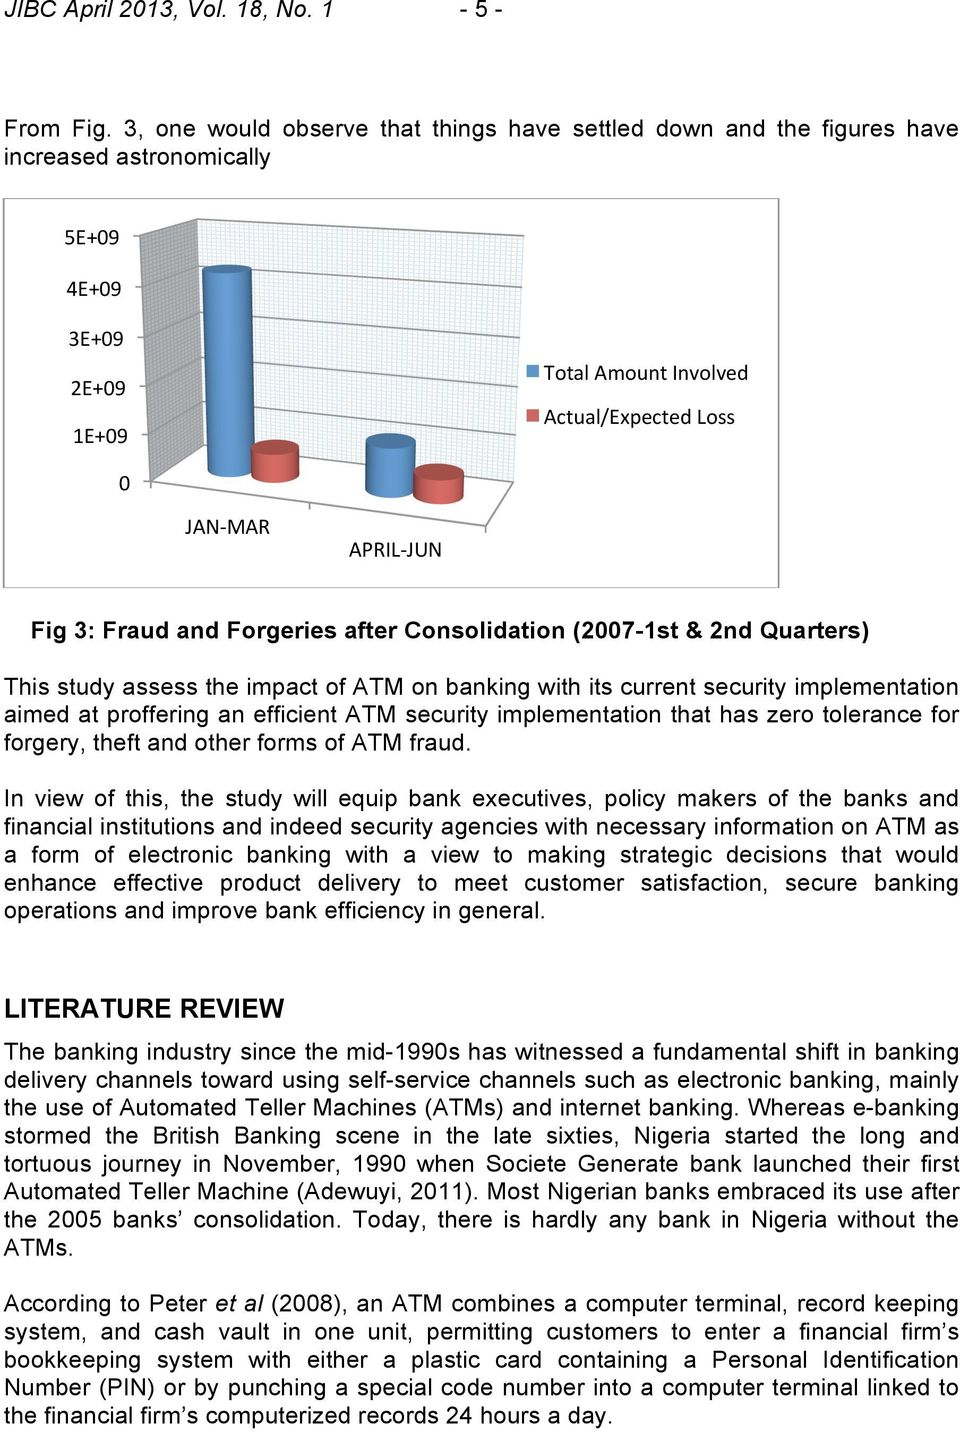 Fraud and Forgeries after Consolidation (2007-1st & 2nd Quarters) This study assess the impact of ATM on banking with its current security implementation aimed at proffering an efficient ATM security